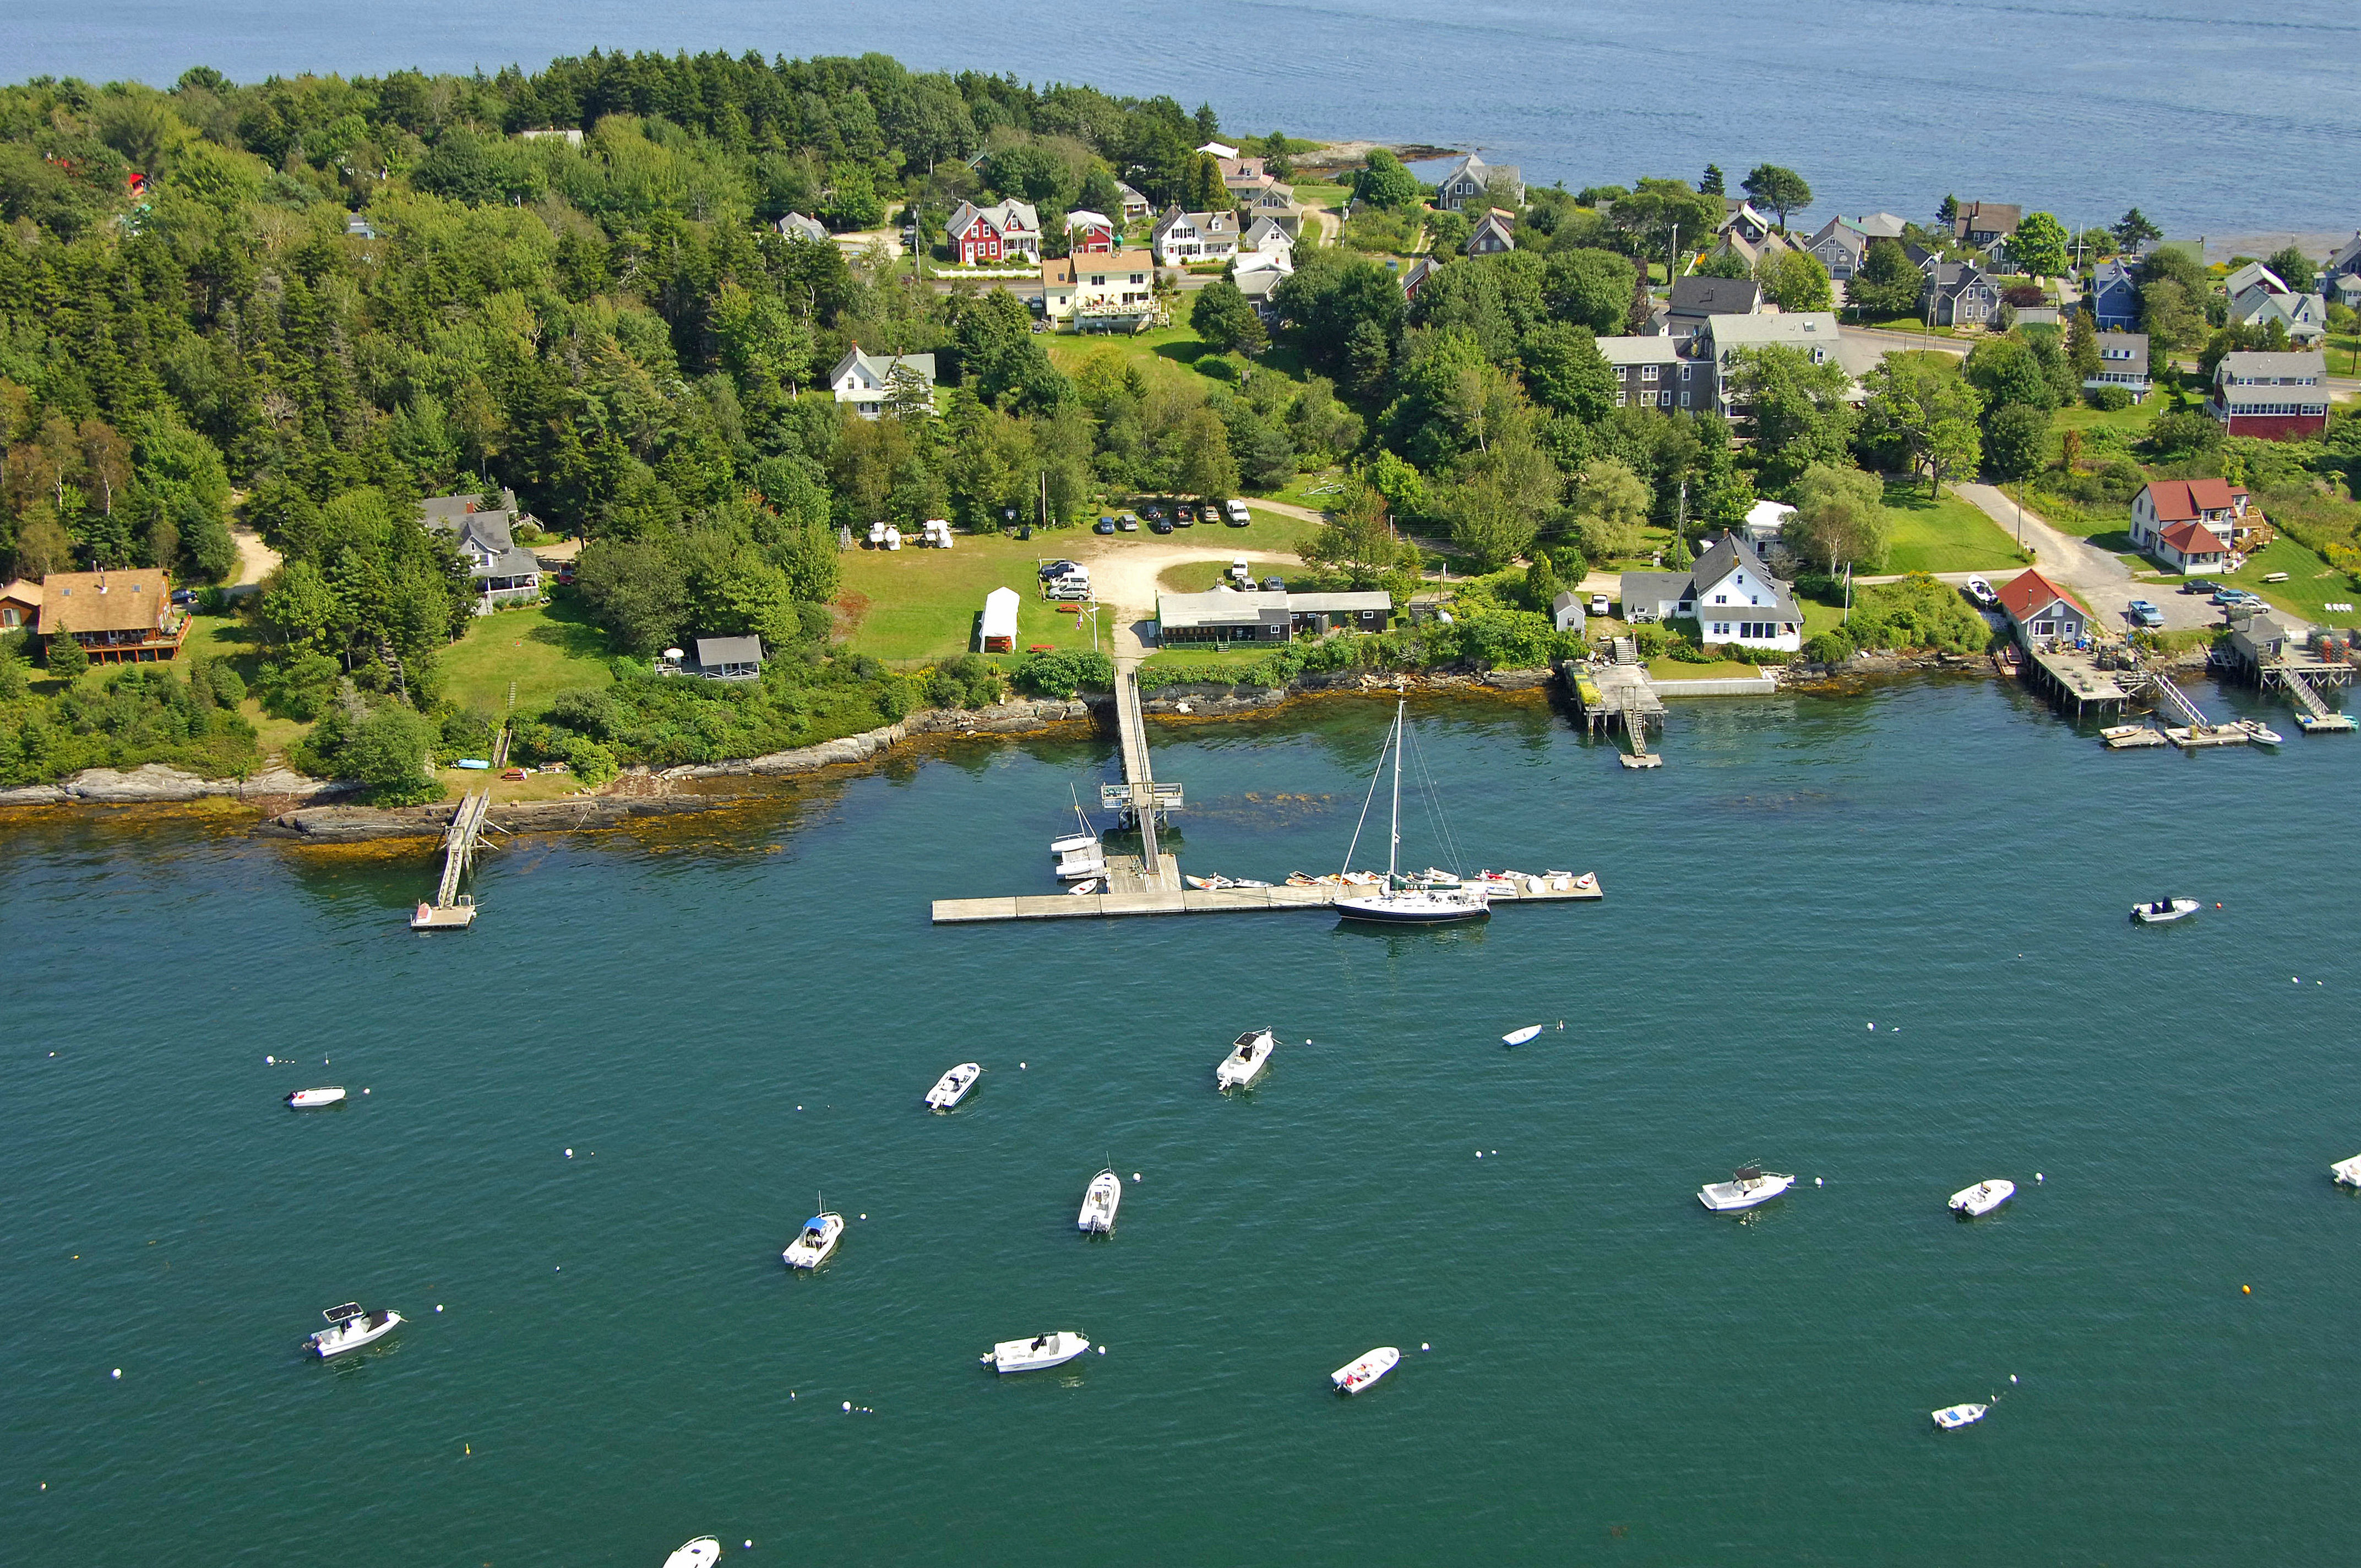 Orrs Bailey Yacht Club in Orrs Island, ME, United States